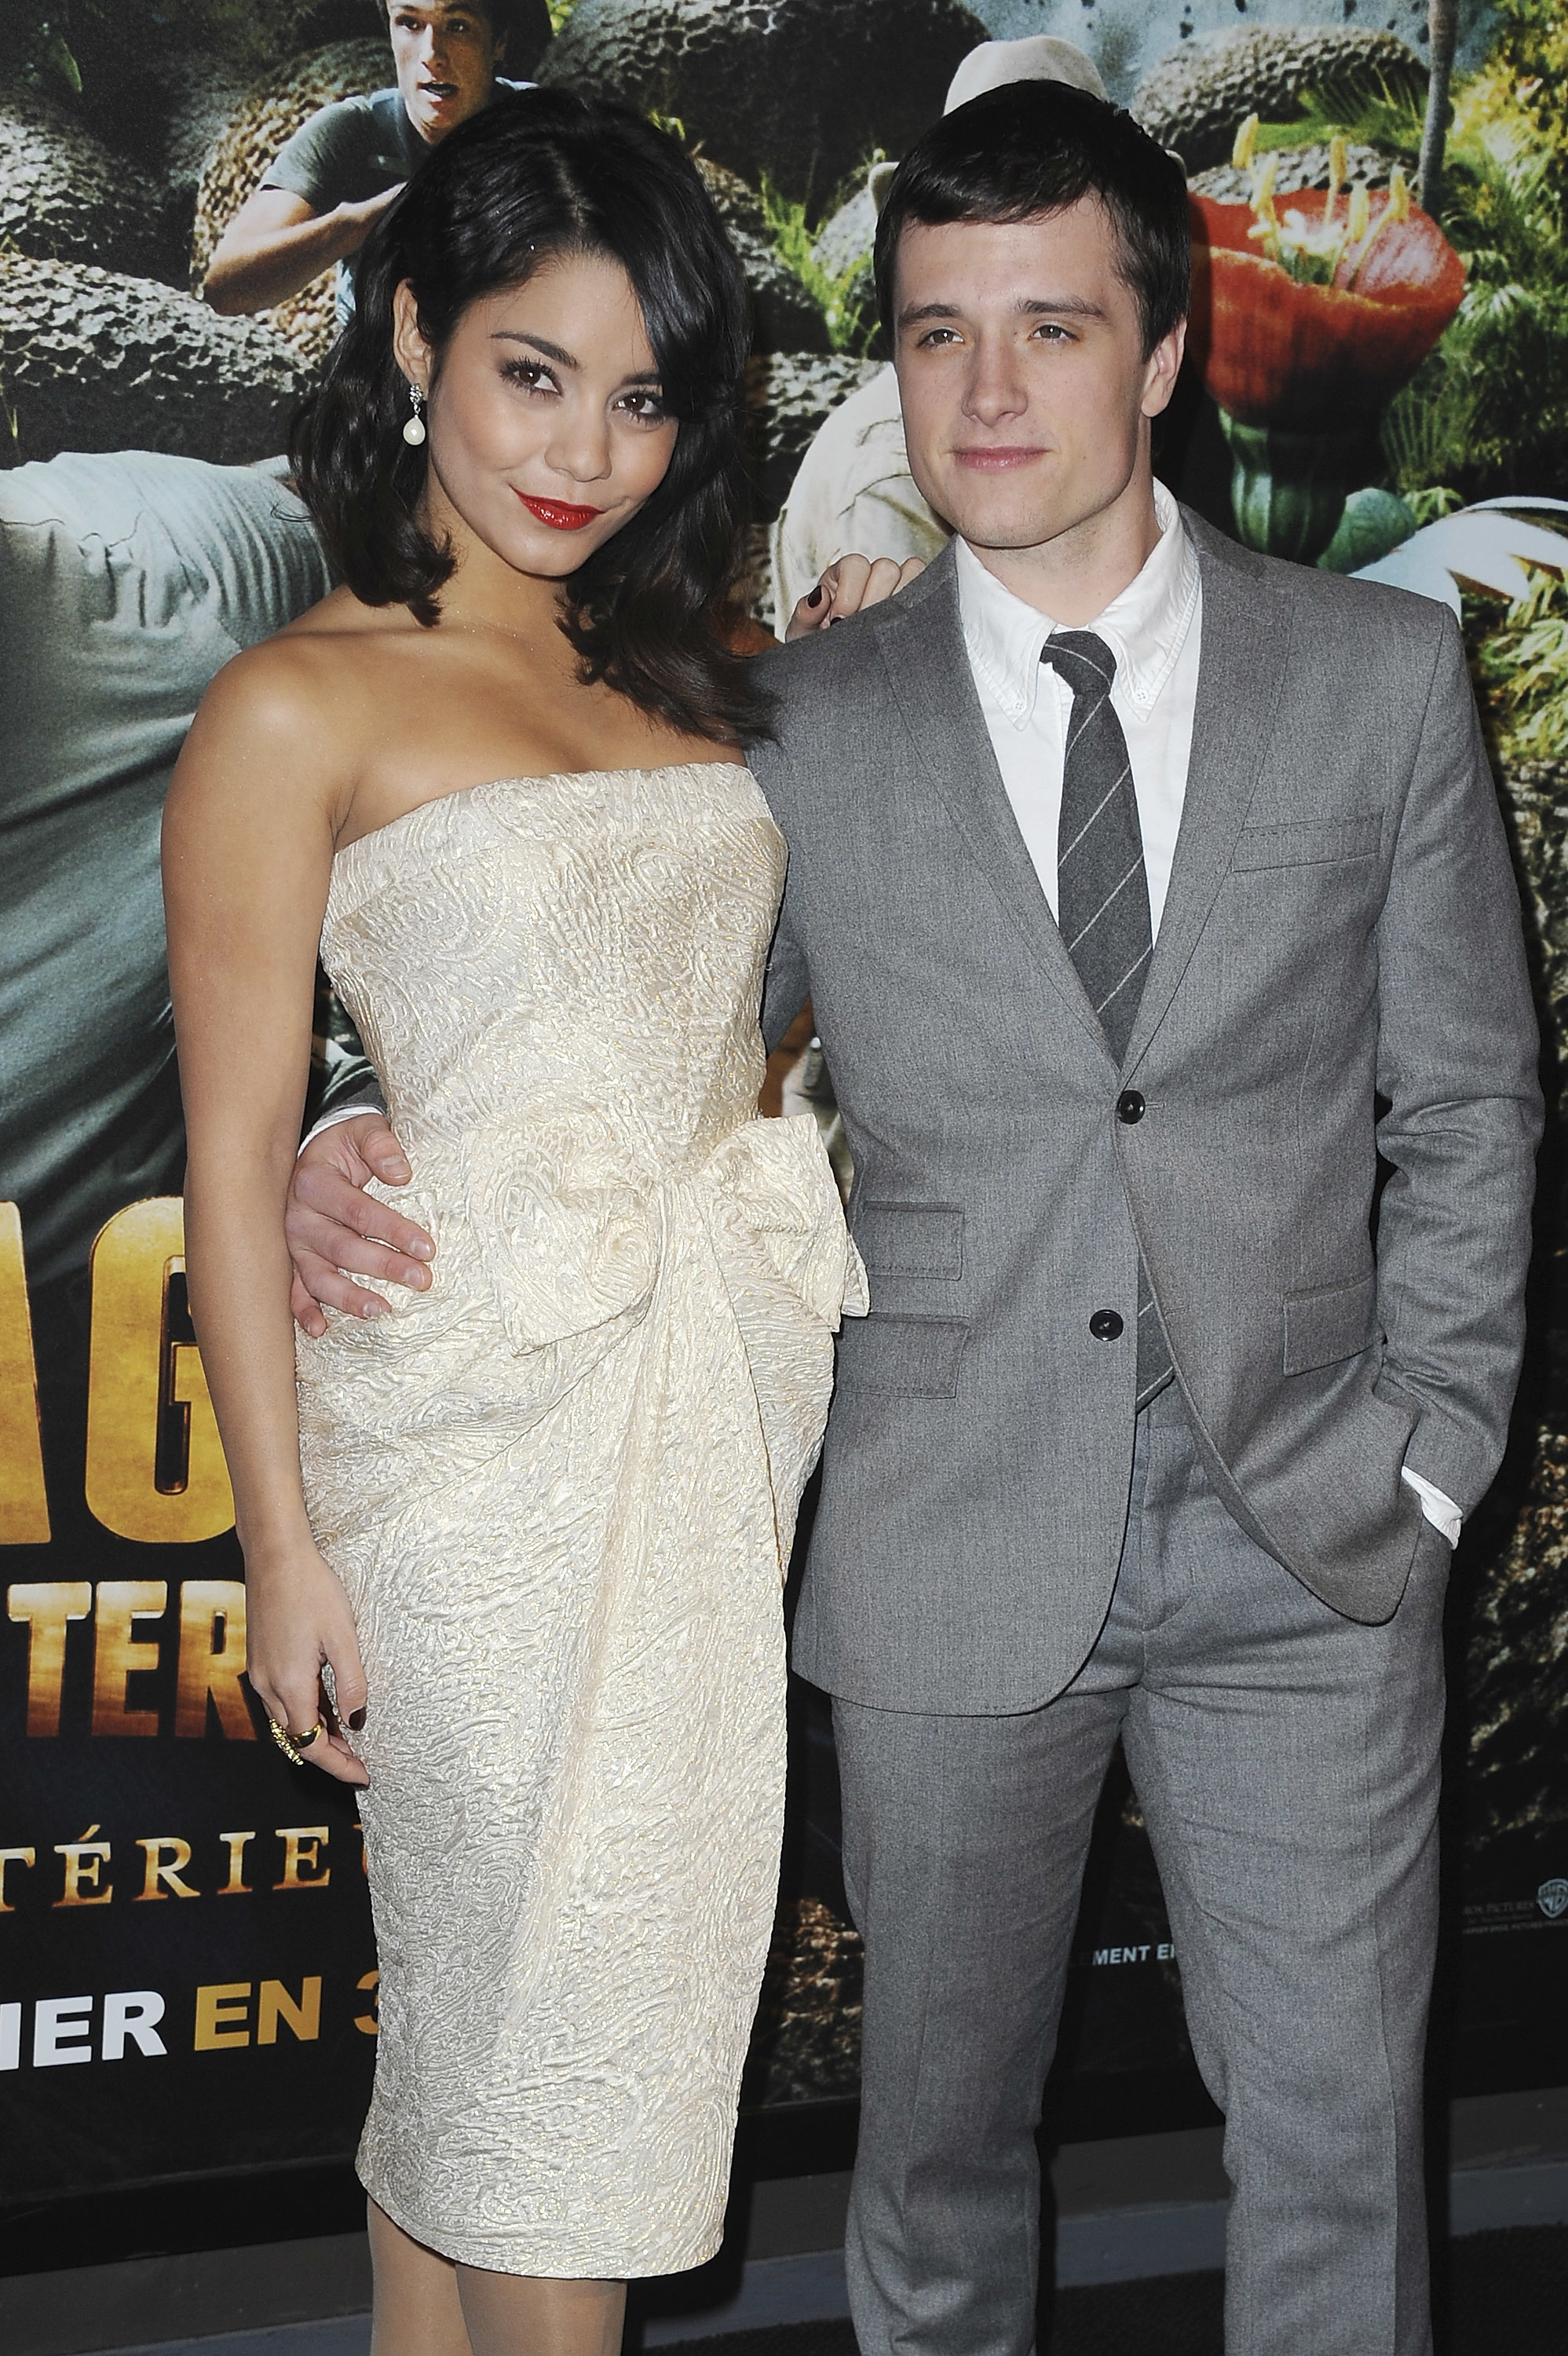 Vanessa Hudgens and Josh Hutcherson pose during the 'Journey 2: The Mysterious Island' Premiere at UGC Cine Cite Bercy in Paris, France on Feb. 12, 2012.